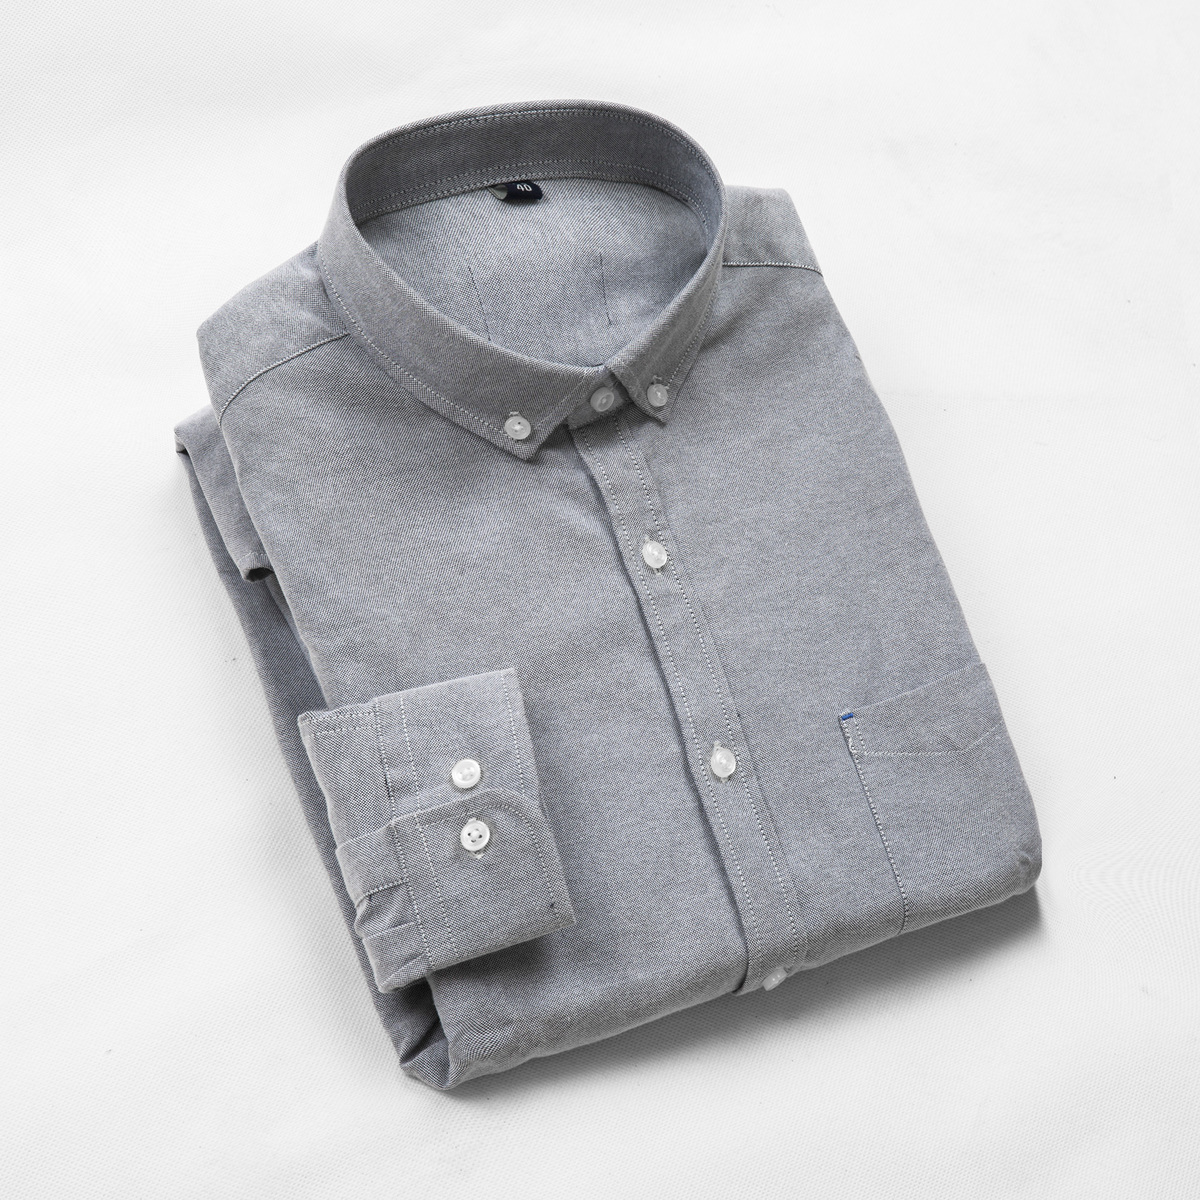 2018 All Seasons Stand Collar Business Casual Cotton Oxford Long Sleeve French Cuff Male Men Work Shirt Slim Plus Size 4XL 8XL in Dress Shirts from Men 39 s Clothing